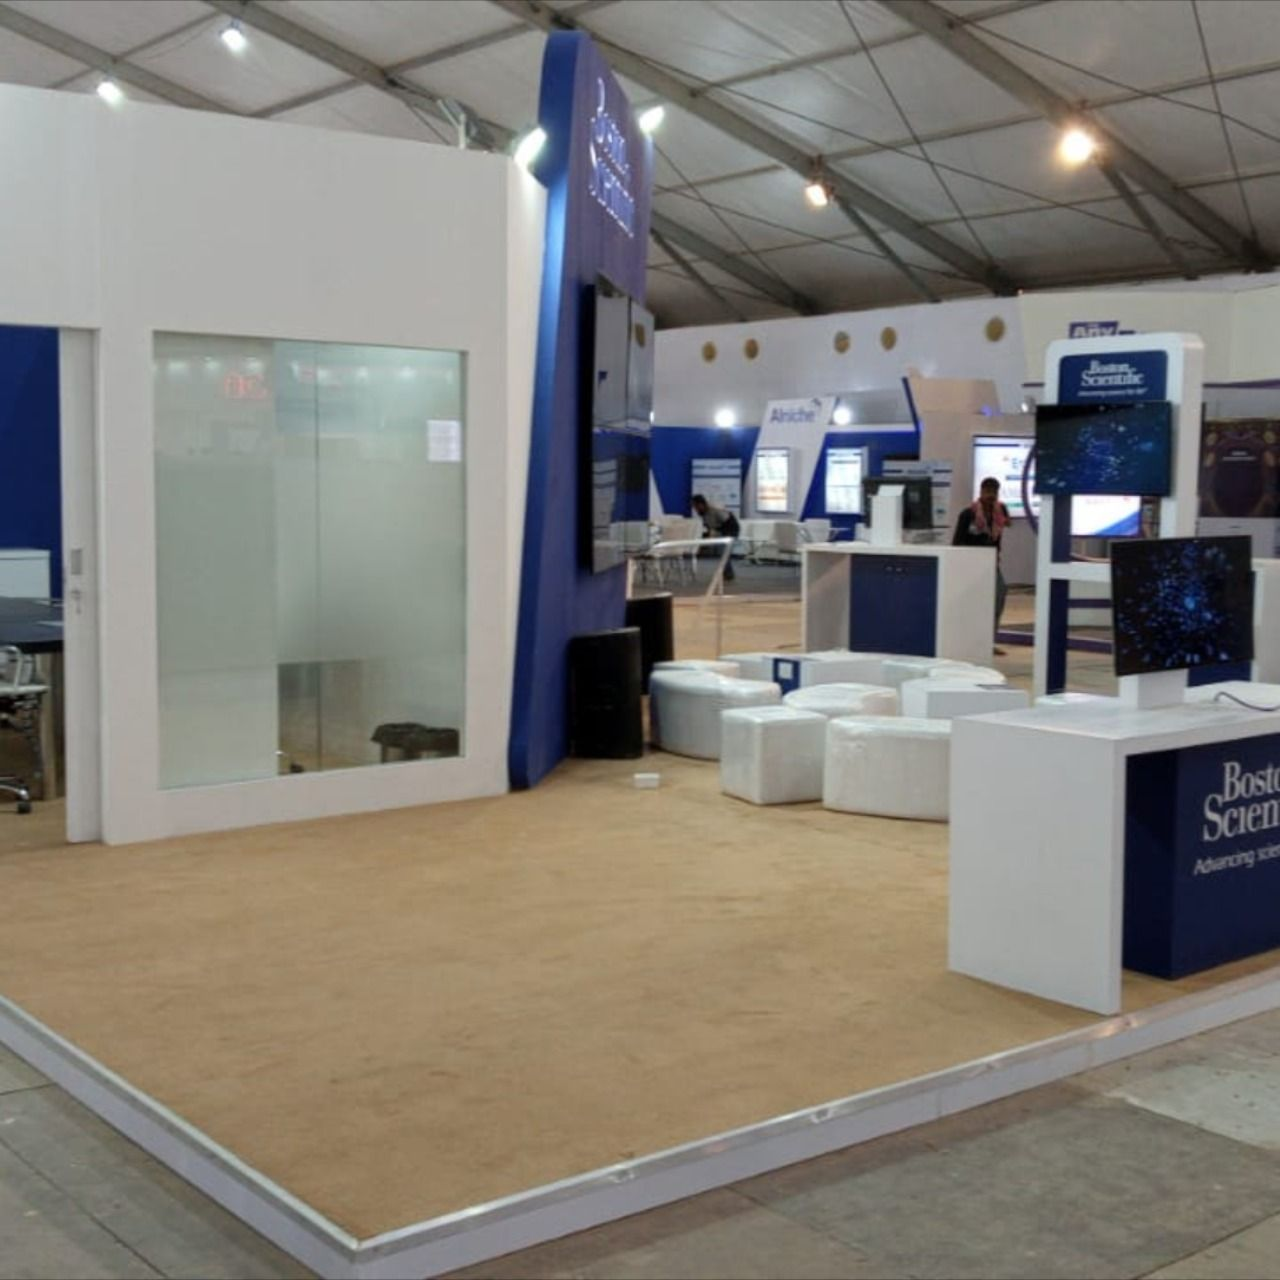 """Here is a throwback to Asia's Largest Gastroenterology Event APDW 2019 which is started today in Kolkata. Let's have a look at what Sconce Global designed and built stand for """"Boston Scientific"""" during APDW 2019. When it comes to design, our goal is simple focus at client's business goal and customer's need.  📌Save The Date 🗓 12th Dec – 15th Dec 2019 📍 Location – Kolkata  #sconceglobal #APDW2019 #exhibitiondesign #creative #innovative #exhibitionstand #boothdesign #event #Bostonscientific"""